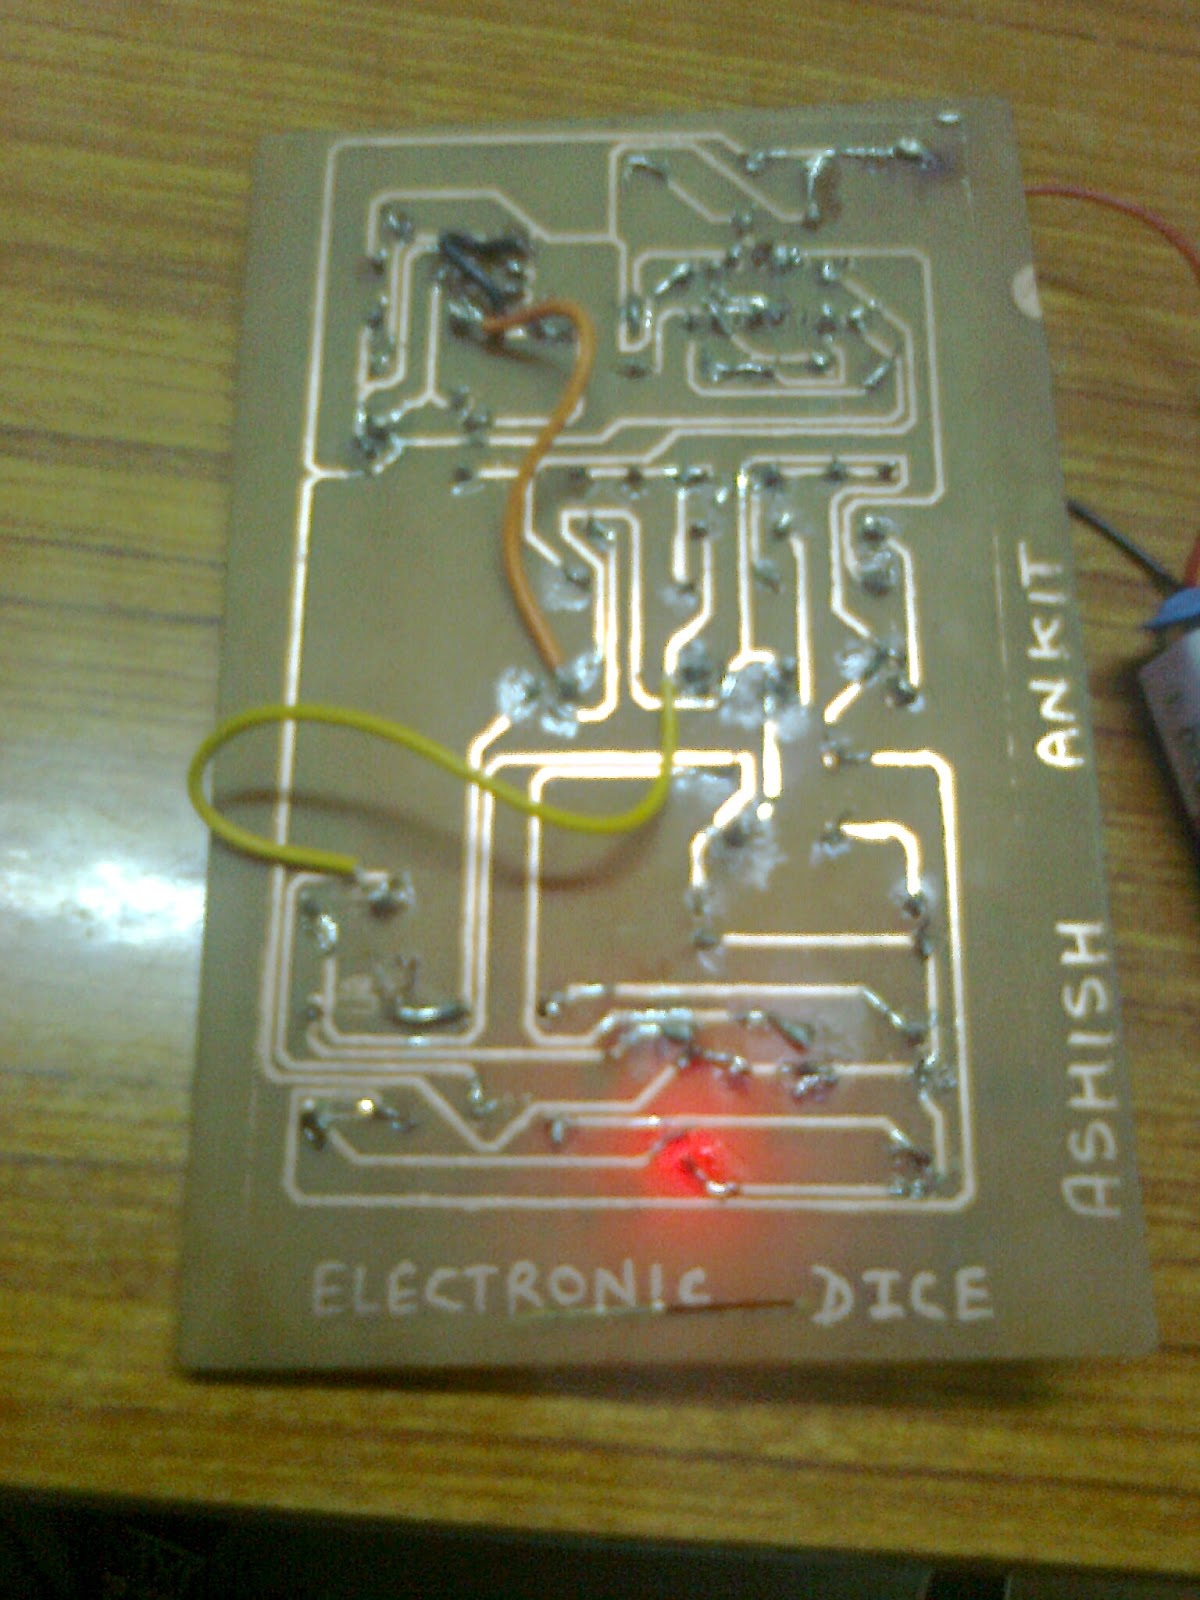 Projects For You Electronic Dice So The Leds Are Not Over Driven 555 Ic And 4017ic Just Enjoy Your Project